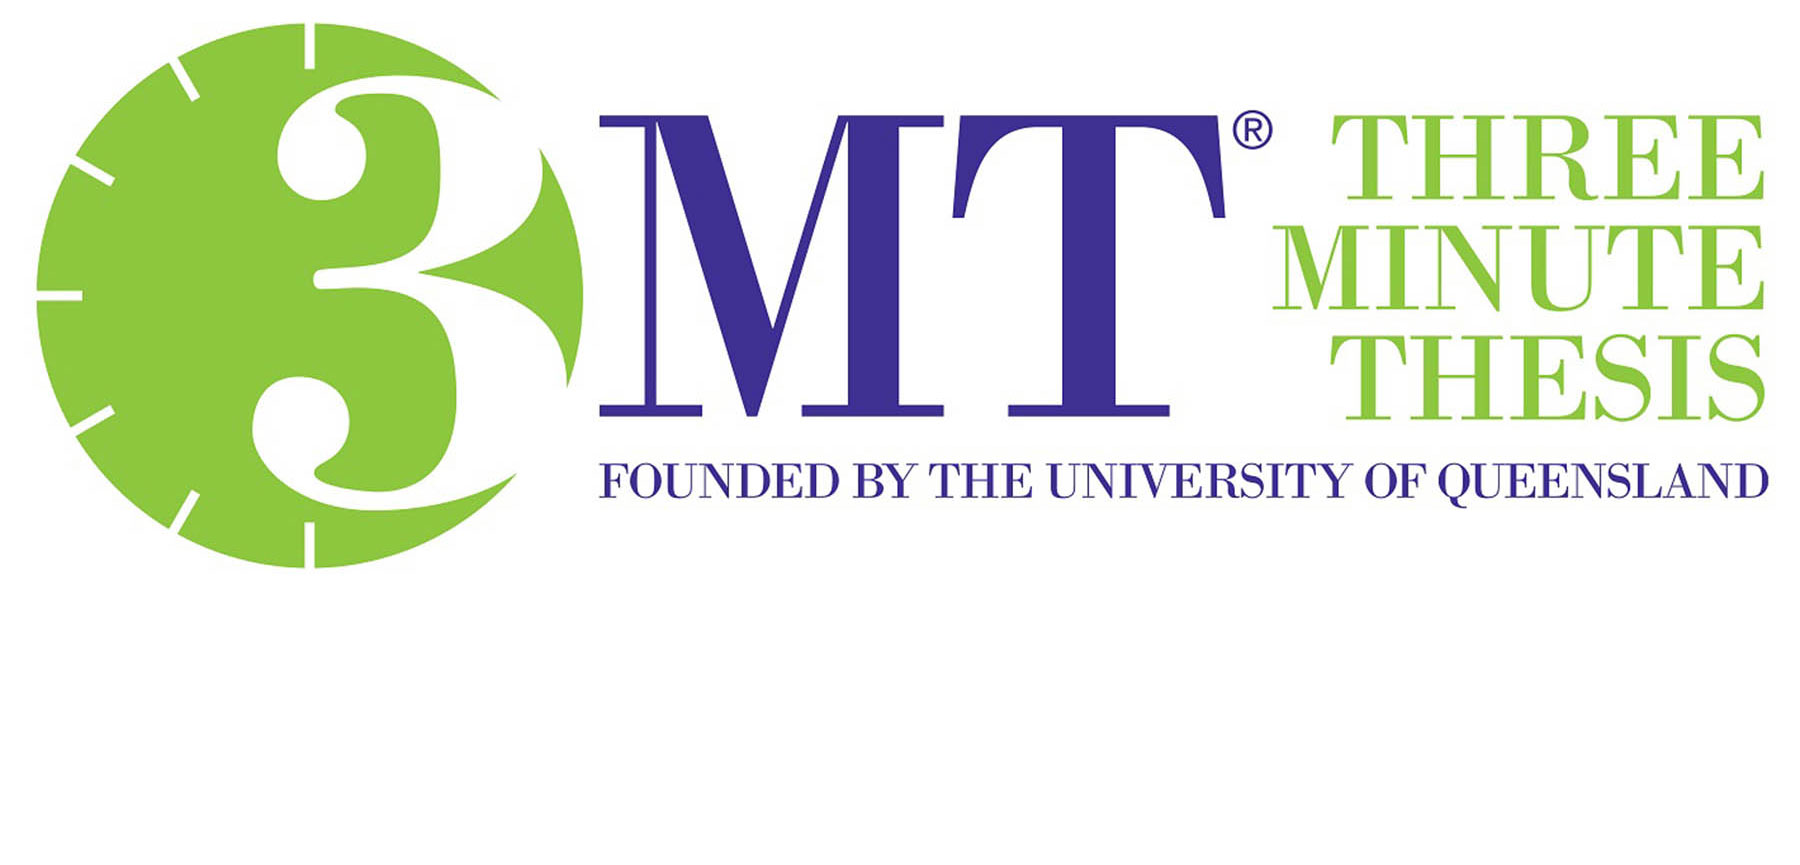 The Second Annual 3MT® Awards Competition